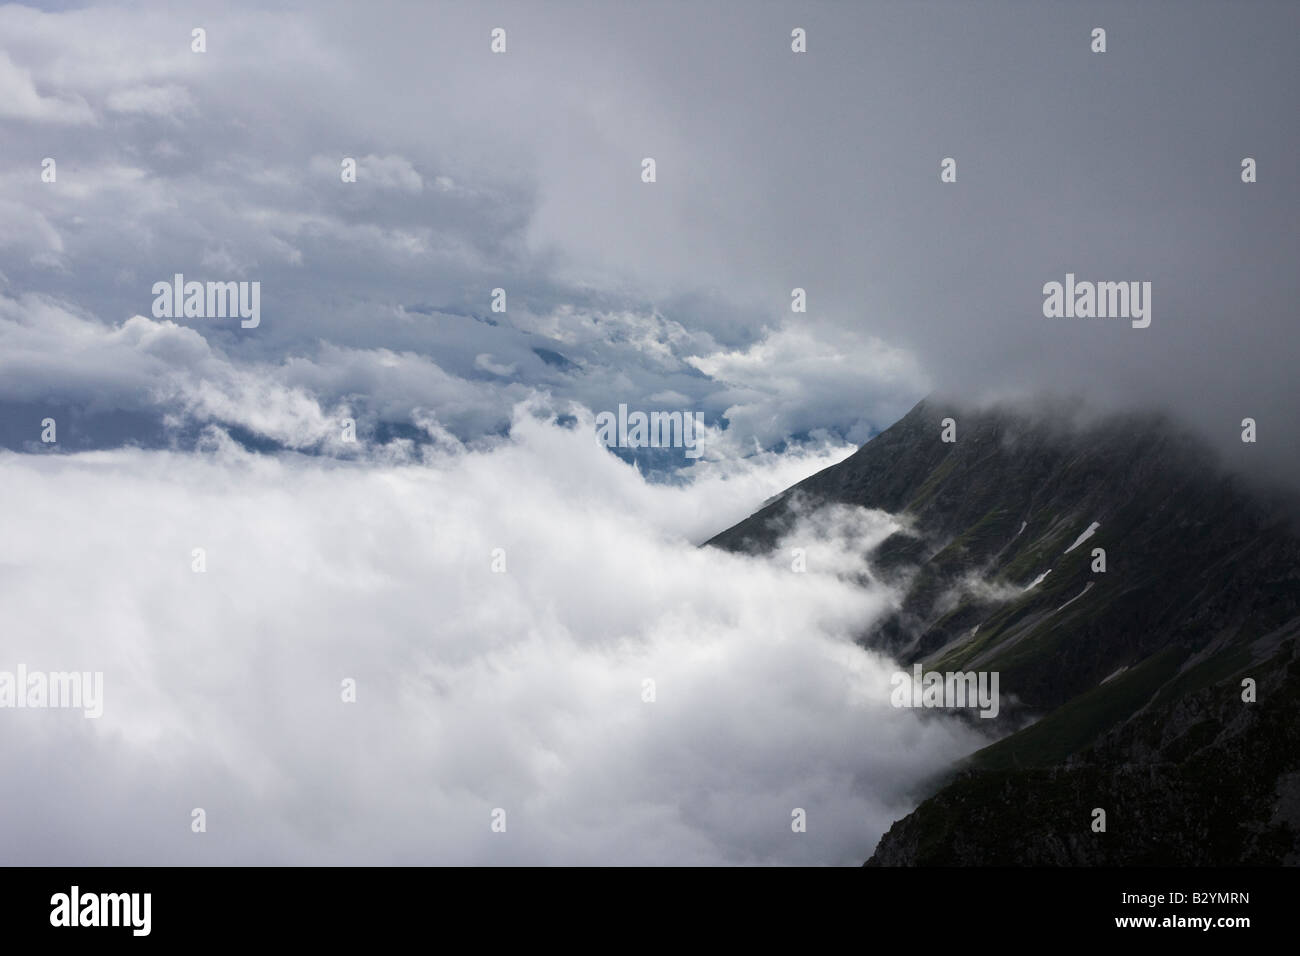 With two layers immagini & with two layers fotos stock alamy